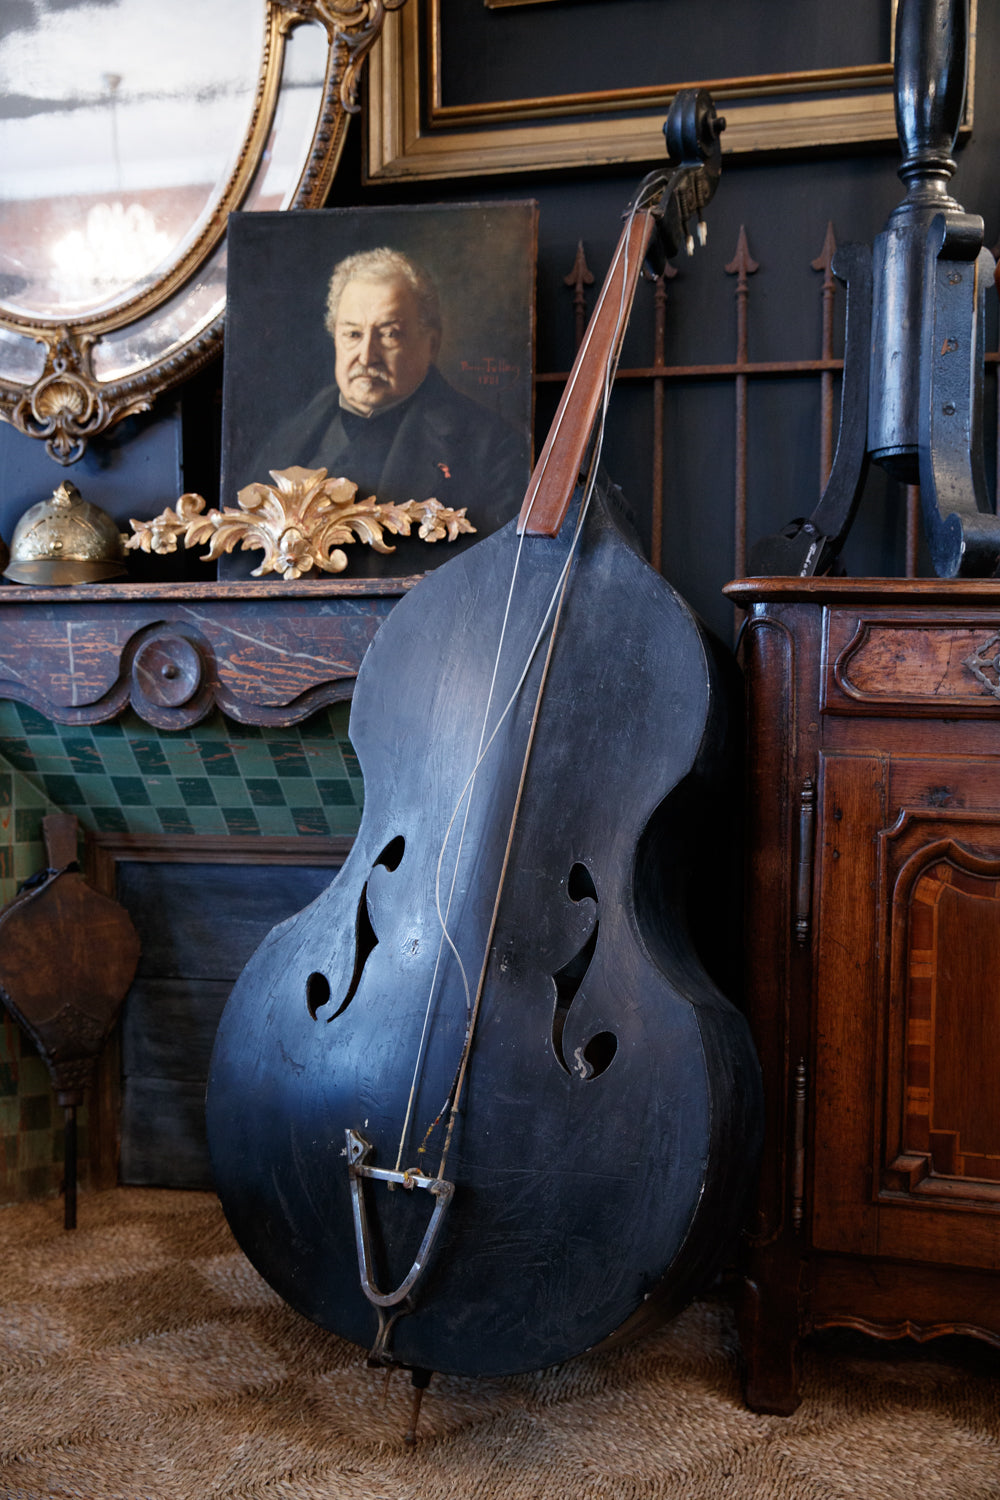 Vintage French Double Bass Instrument